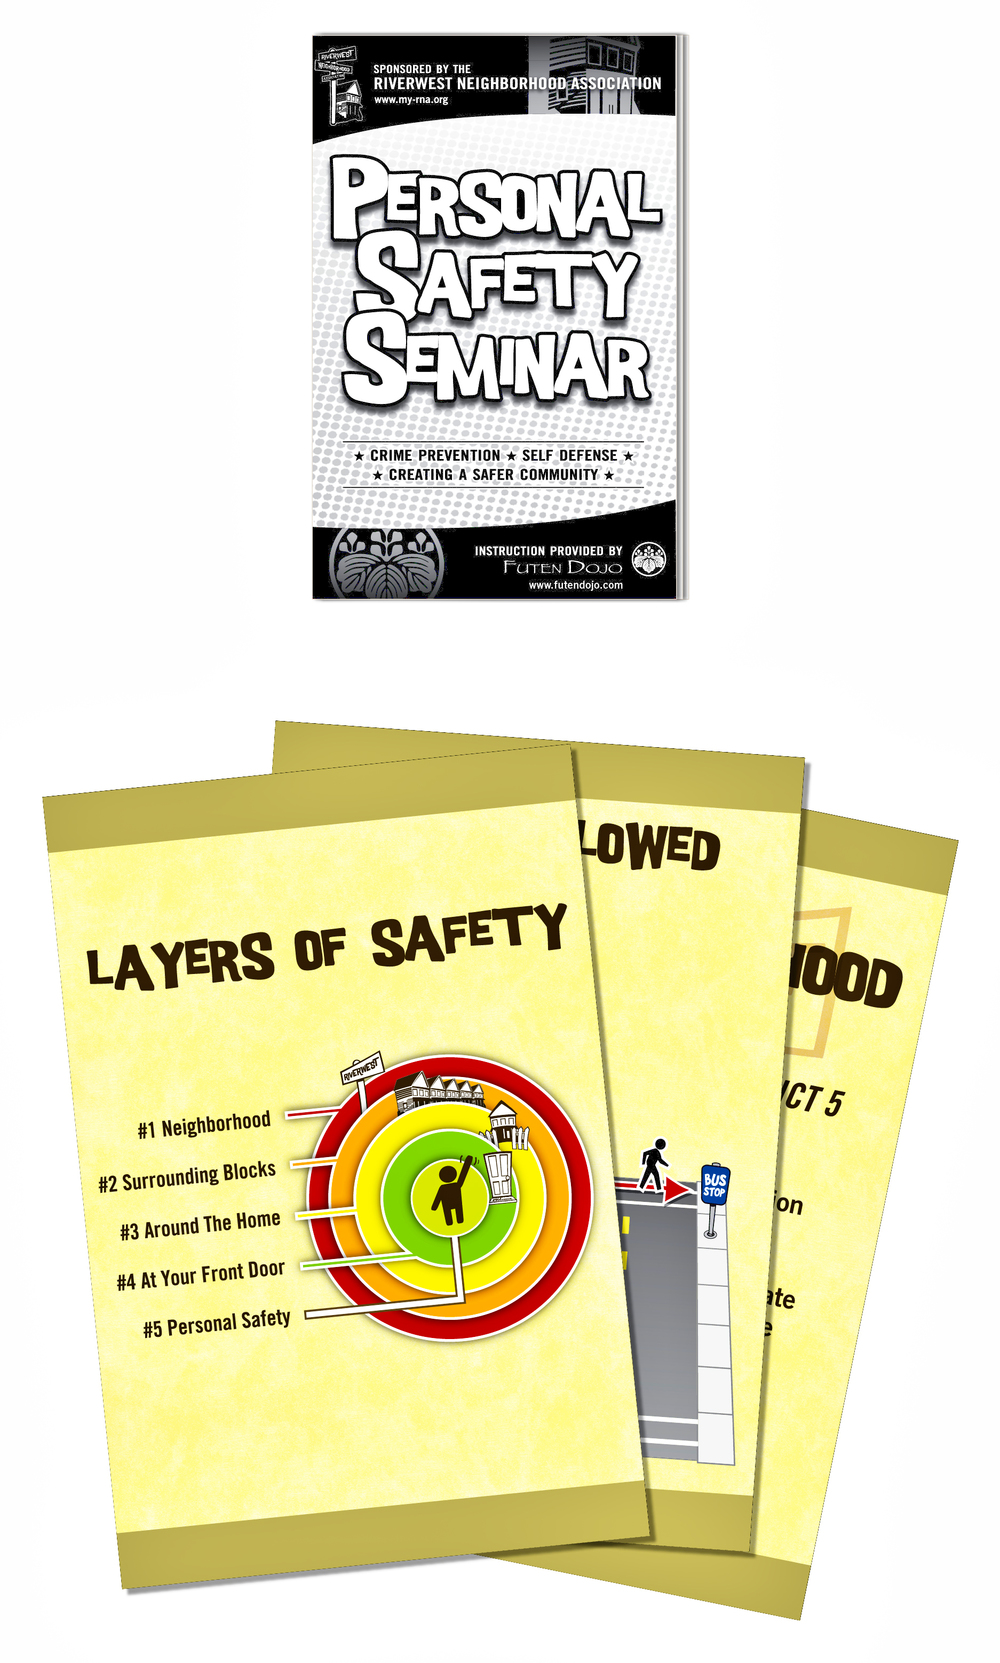 Safety seminar pamphlet and visual aids from the class.   I actually arranged the class to be taught in my neighborhood, managed to get my martial arts instructor to teach it and made the print collateral to go along with it.